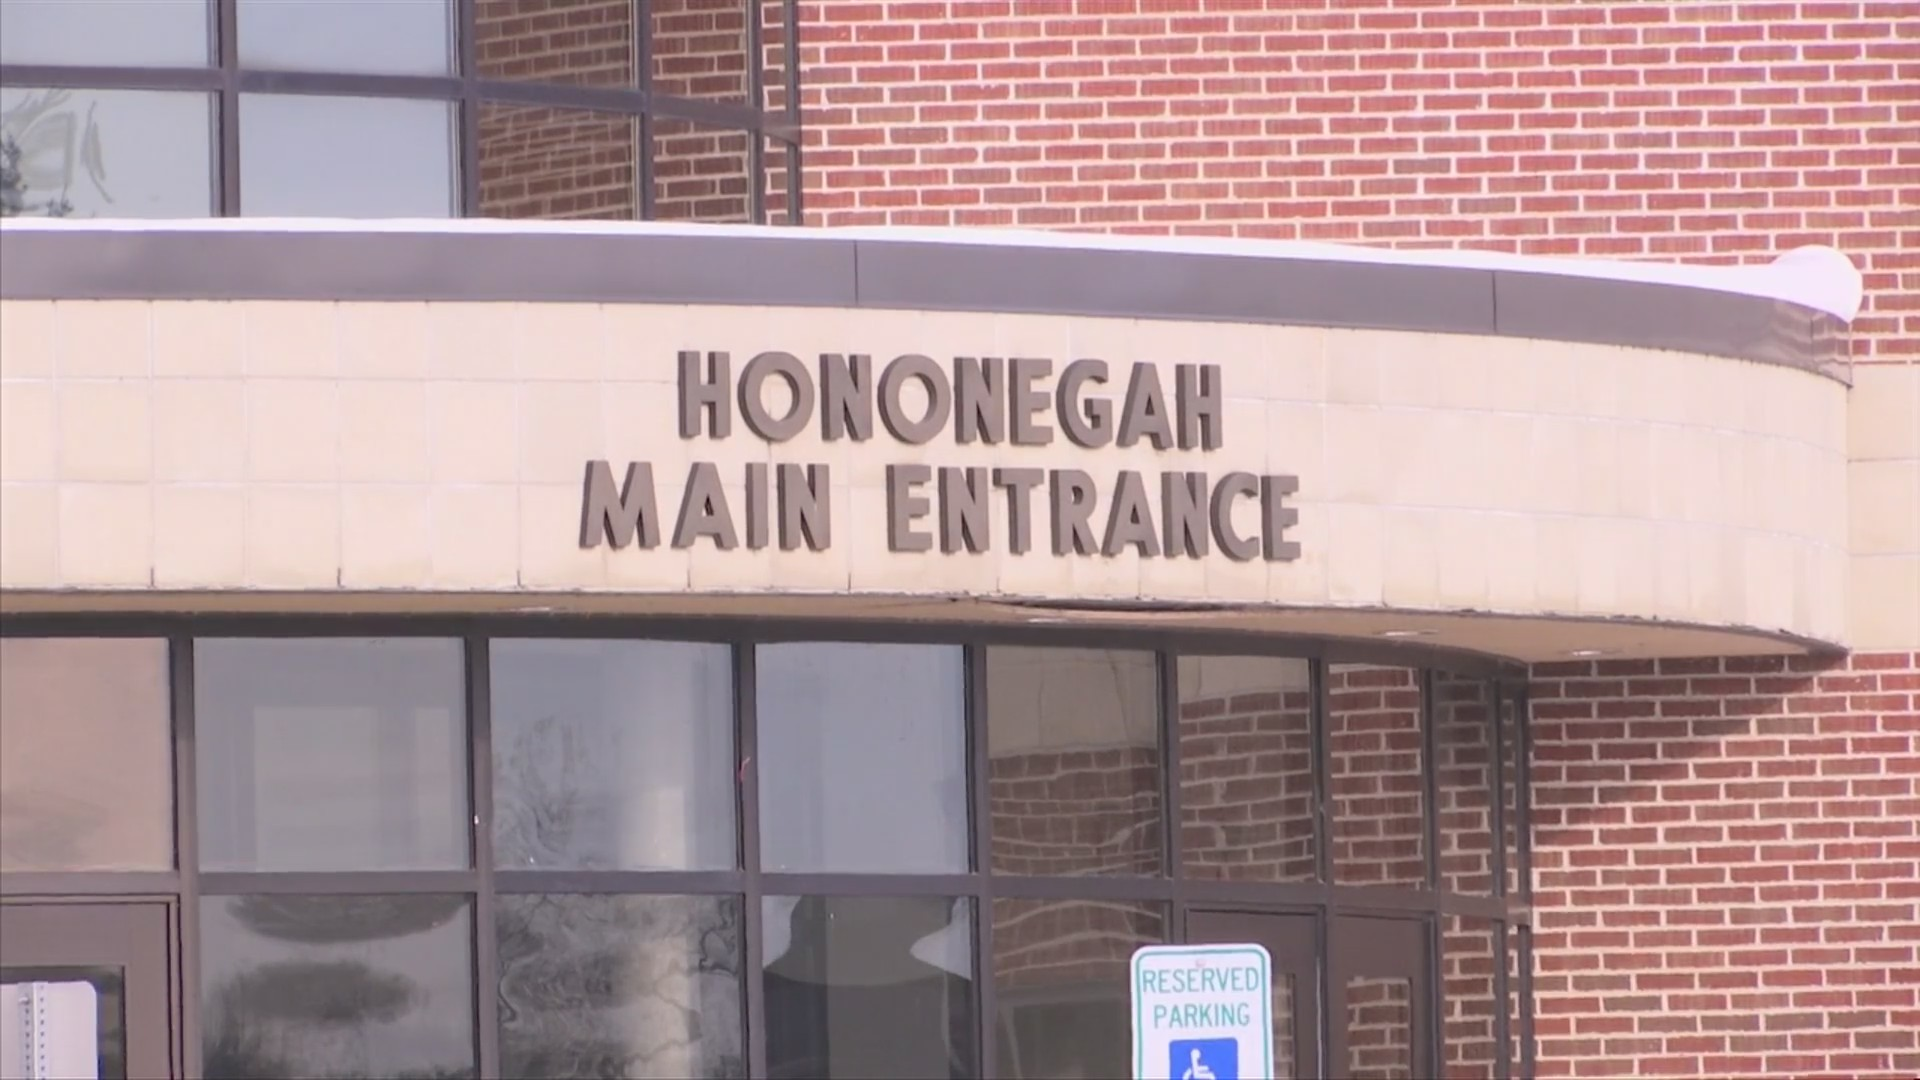 Accidental fire damages Hononegah High School